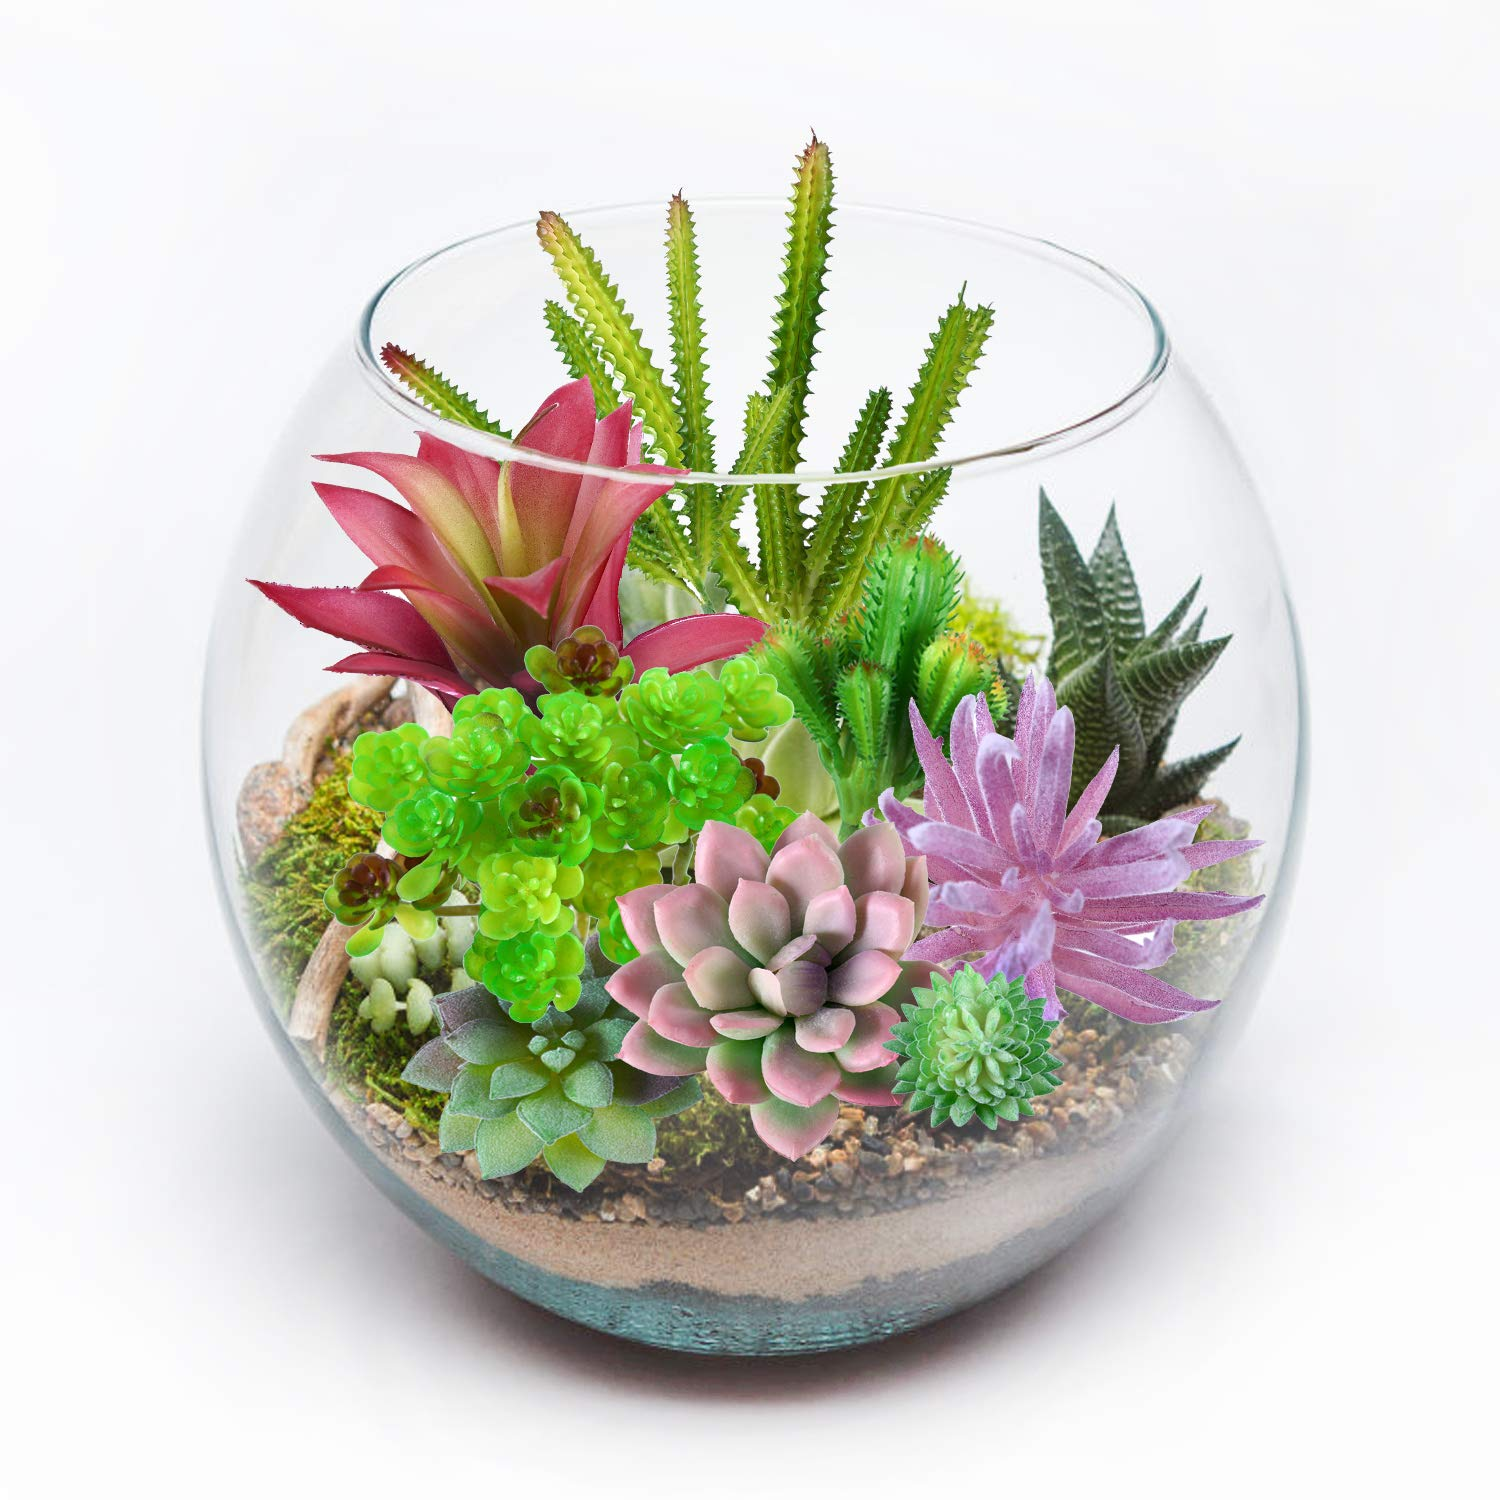 Beaspire Artificial Fake Succulent Plants 15 PCS Fake Plants Unpotted Faux Succulent Assorted for Indoor or Outdoor Decor, Office and Garden Arrangements Decoration